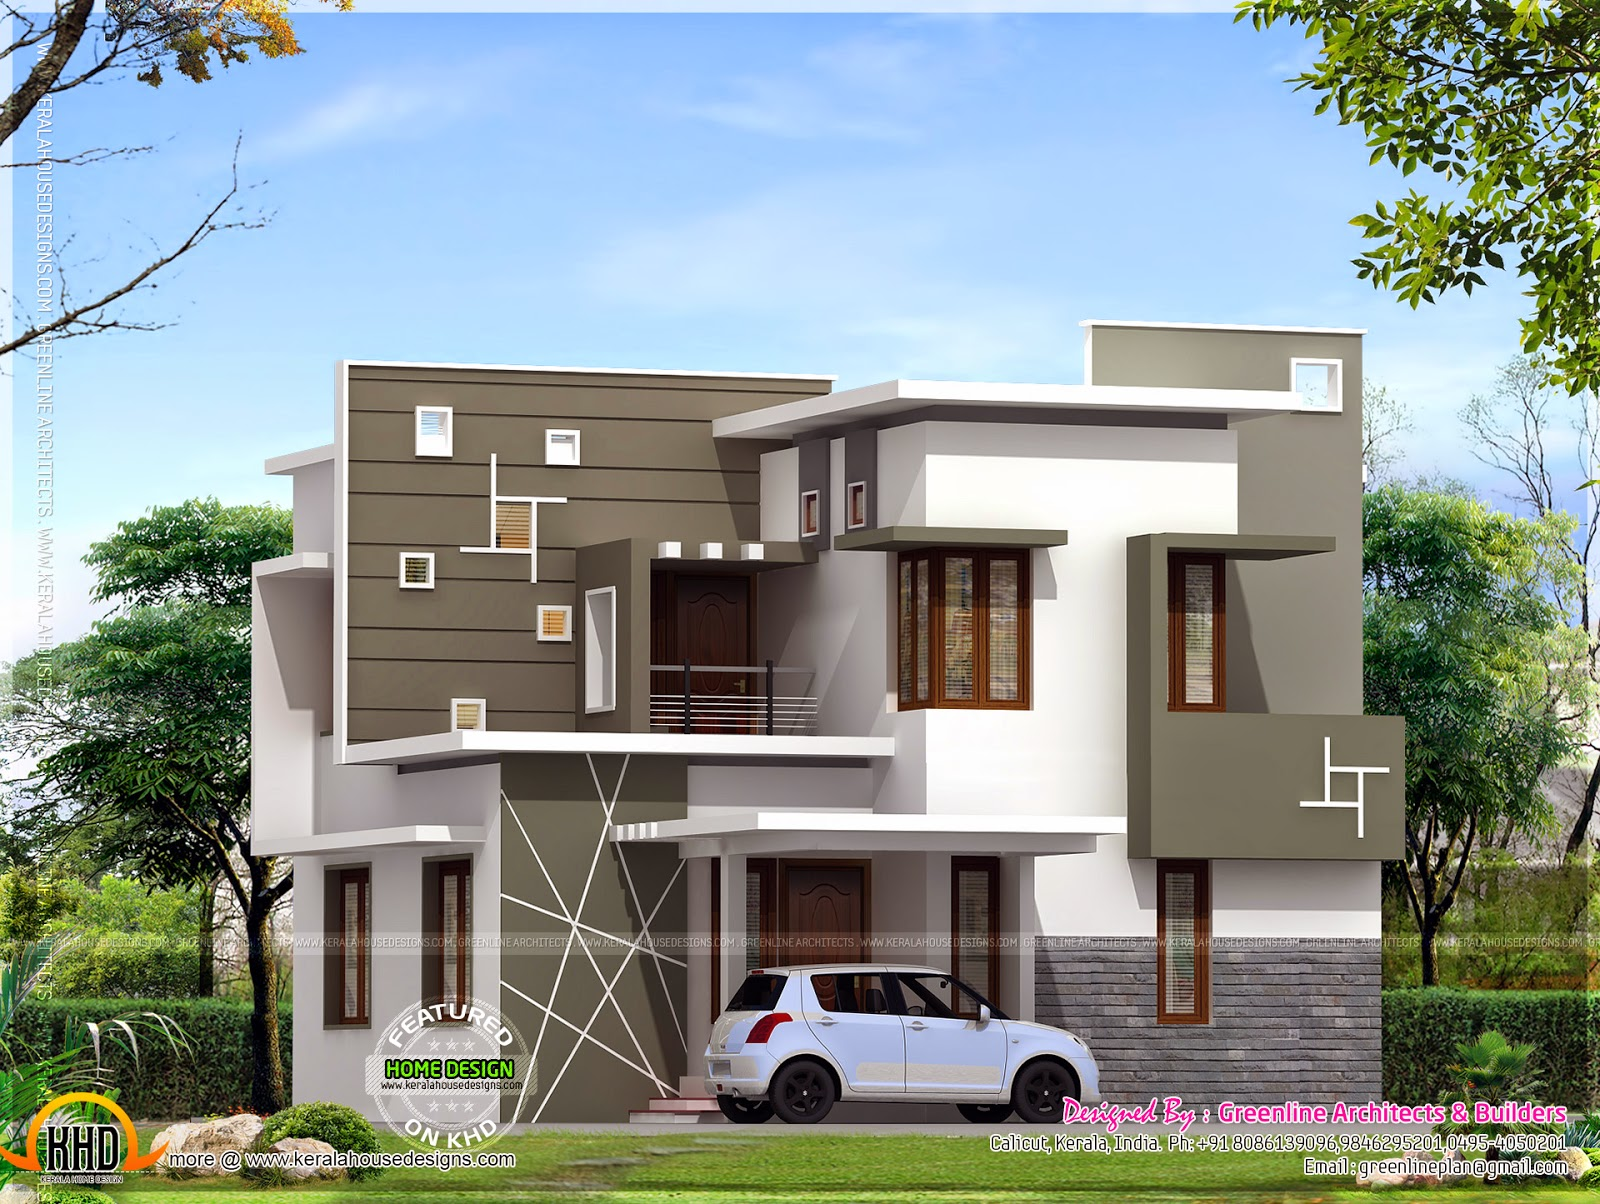 Small House Elevation Kerala Style : Kerala style modern house plans and elevations front design